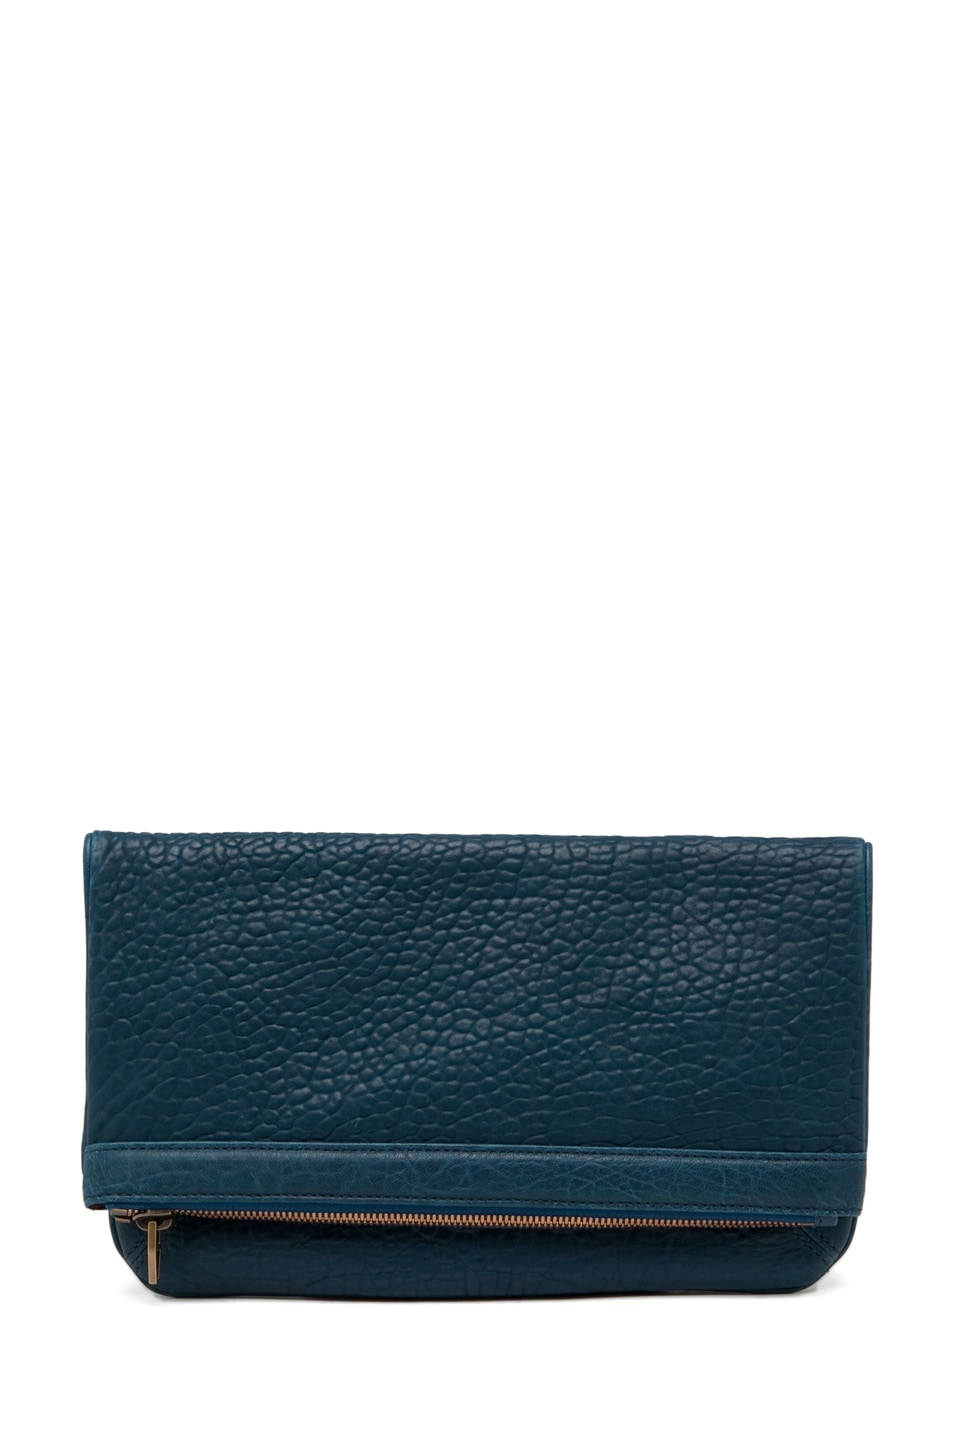 Image 1 of Alexander Wang Dumbo Soft Clutch in Petrol